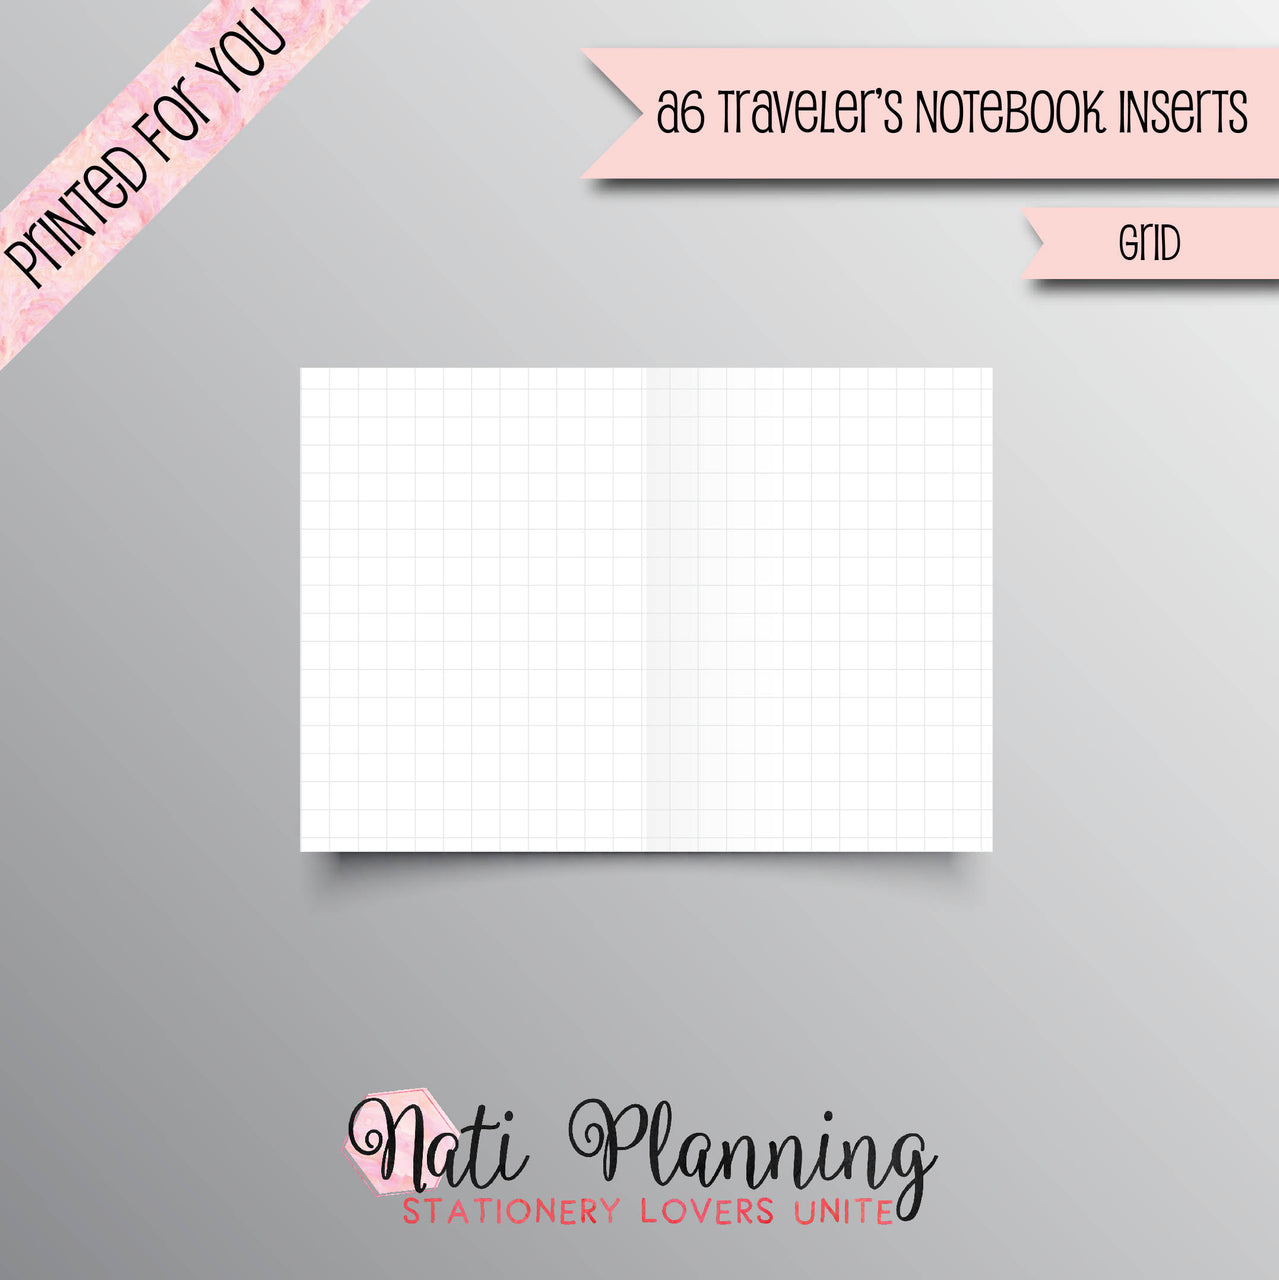 GRID PRINTED A6 Travelers Notebook Inserts | TN Grid Inserts | Foxy Fix No 3 | Bullet Journal | Planner Inserts | Travellers Notebook |